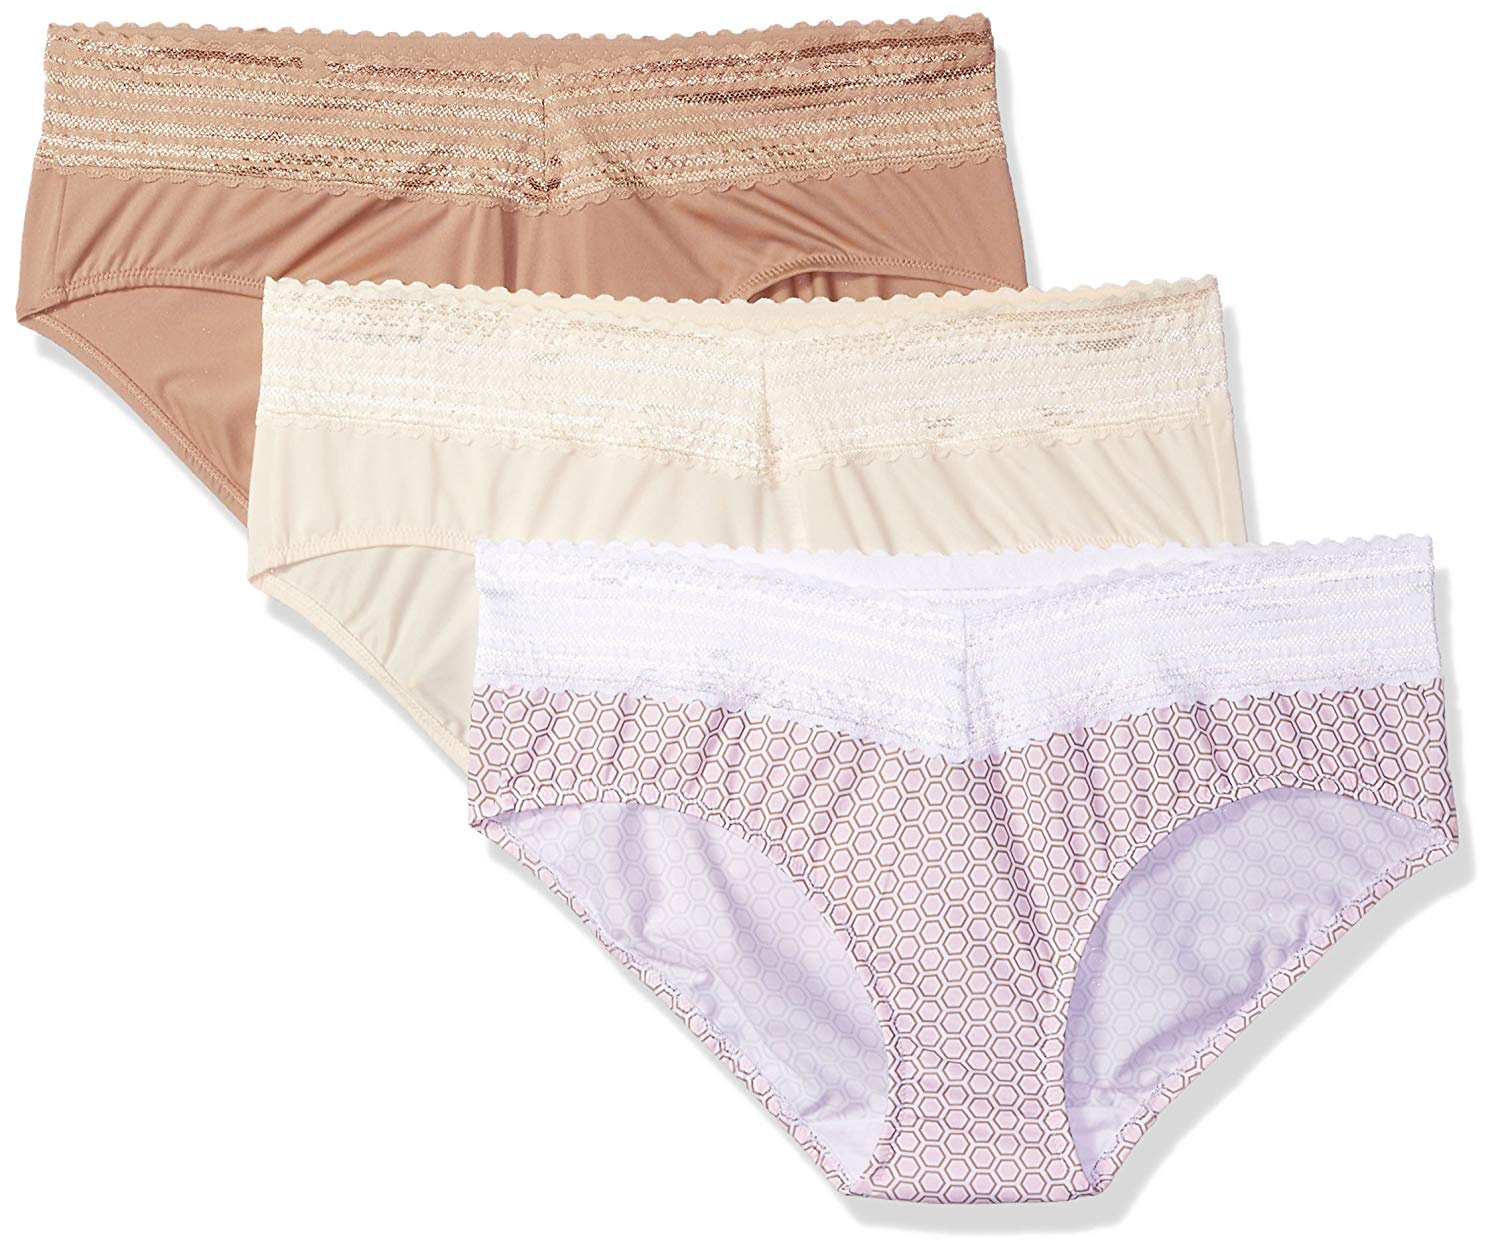 c5d6d8bd9ce7 Warner's Women's Blissful Benefits No Muffin Top 3 Pack Lace Hipster Panties